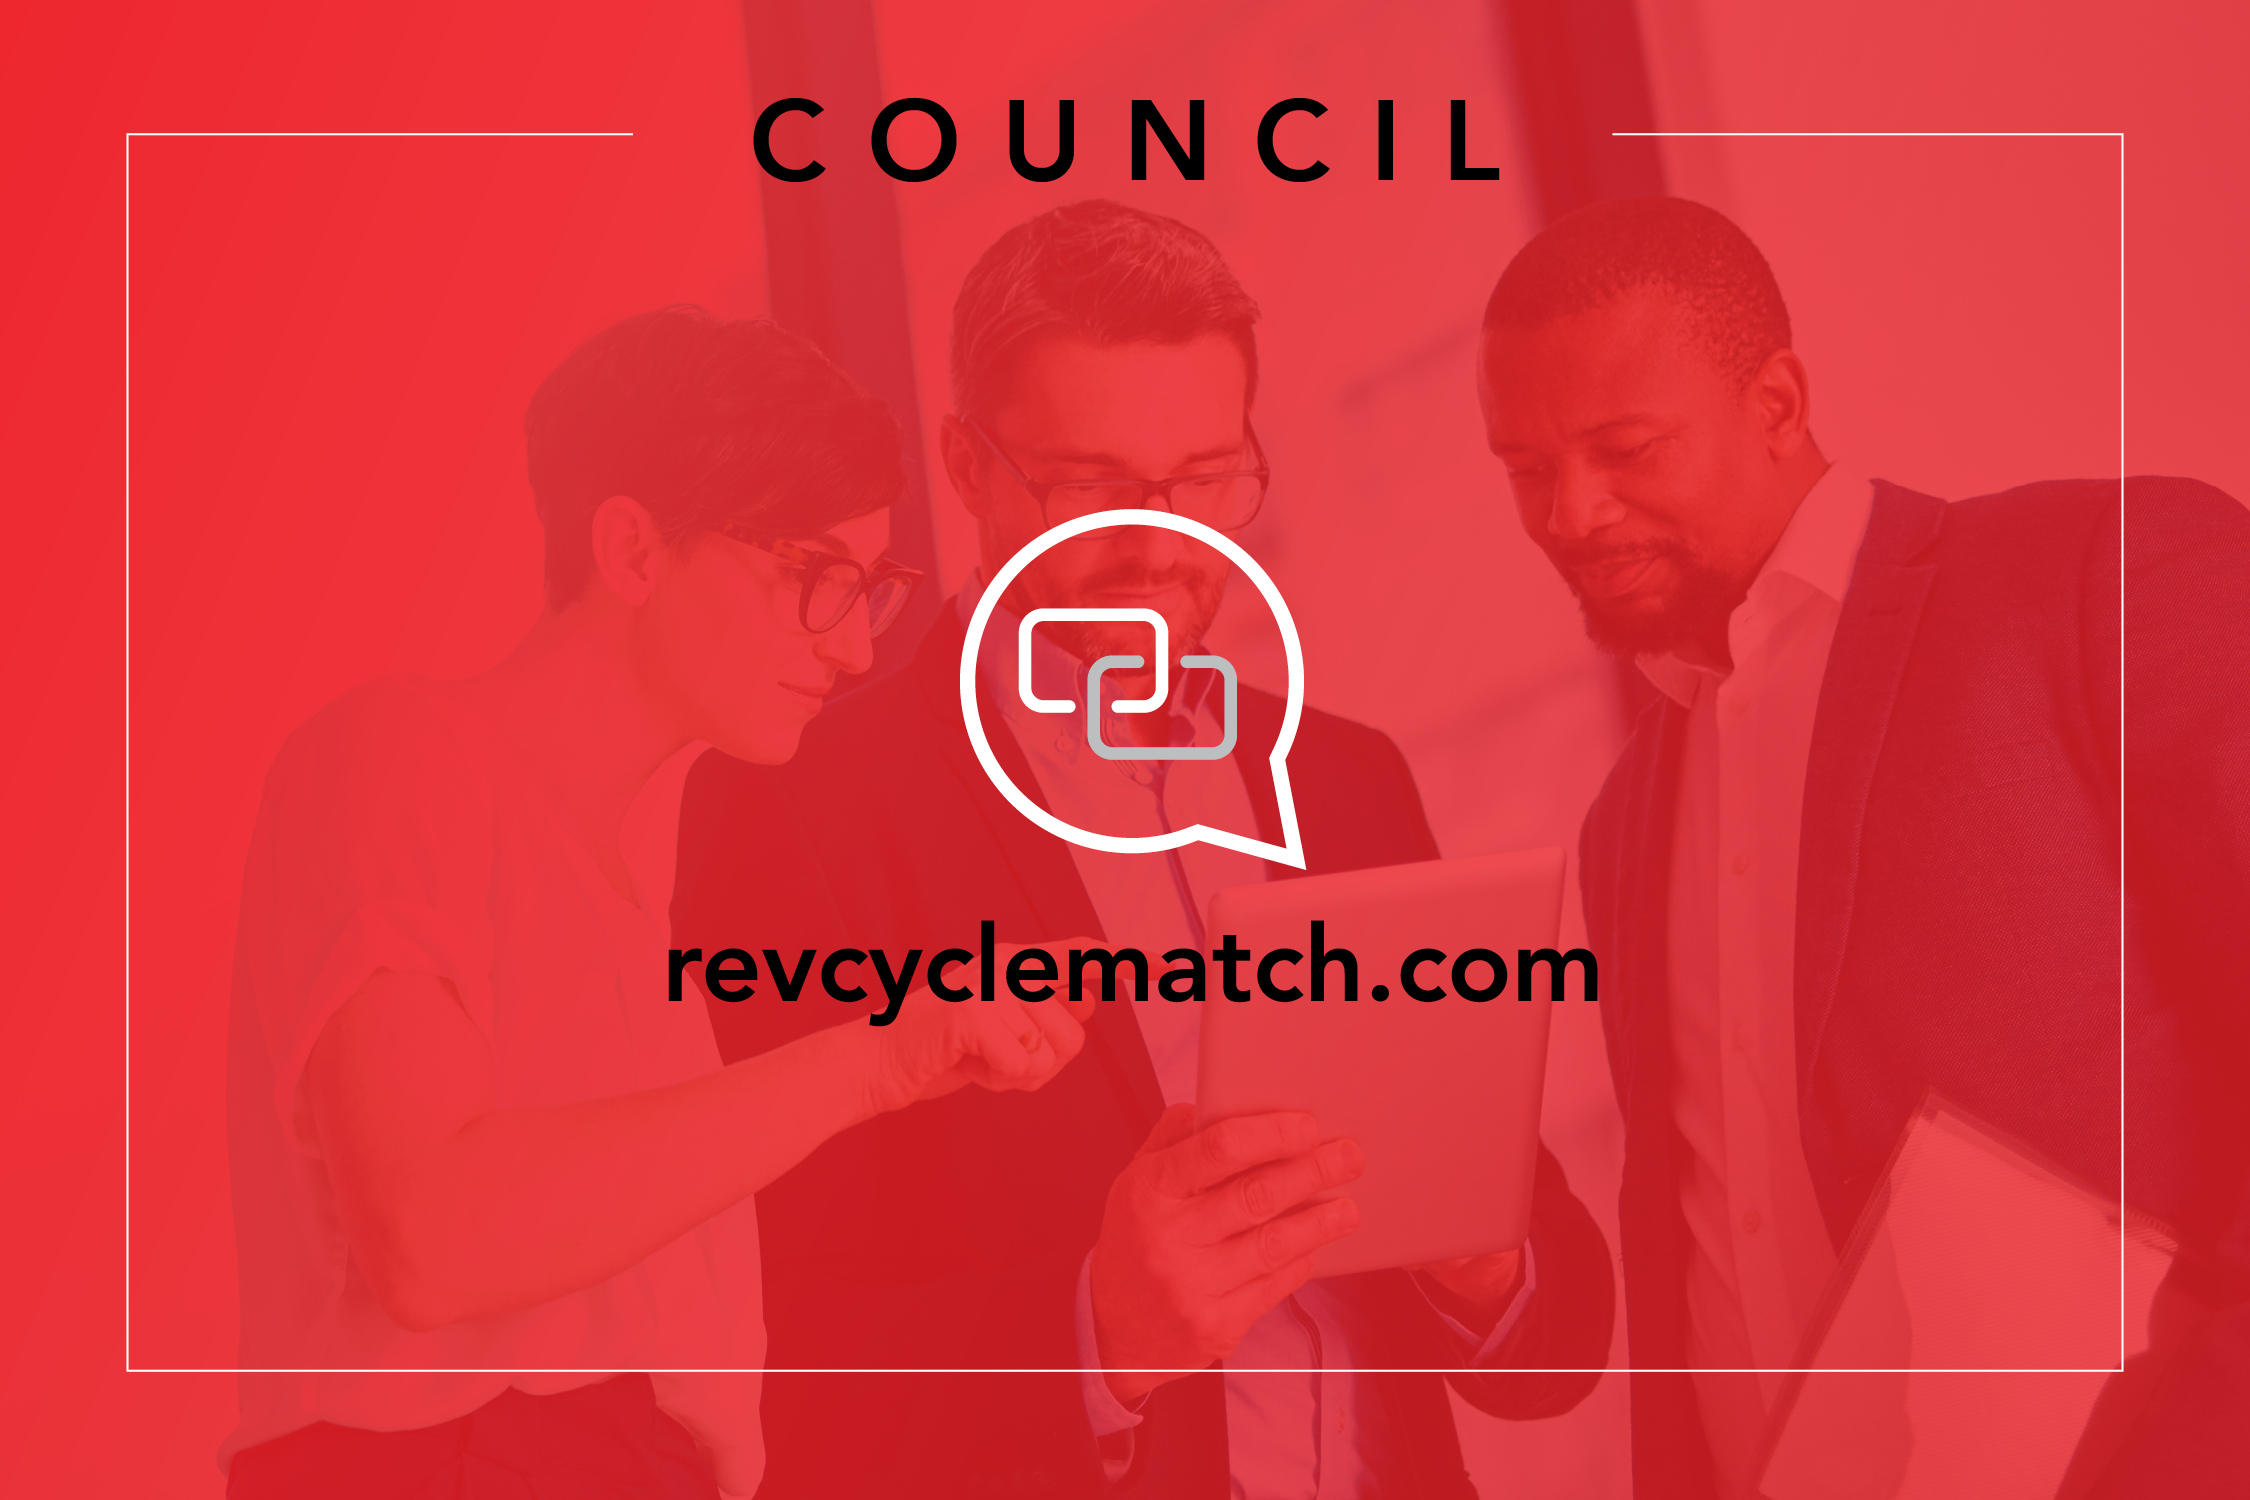 revcyclematch.com council